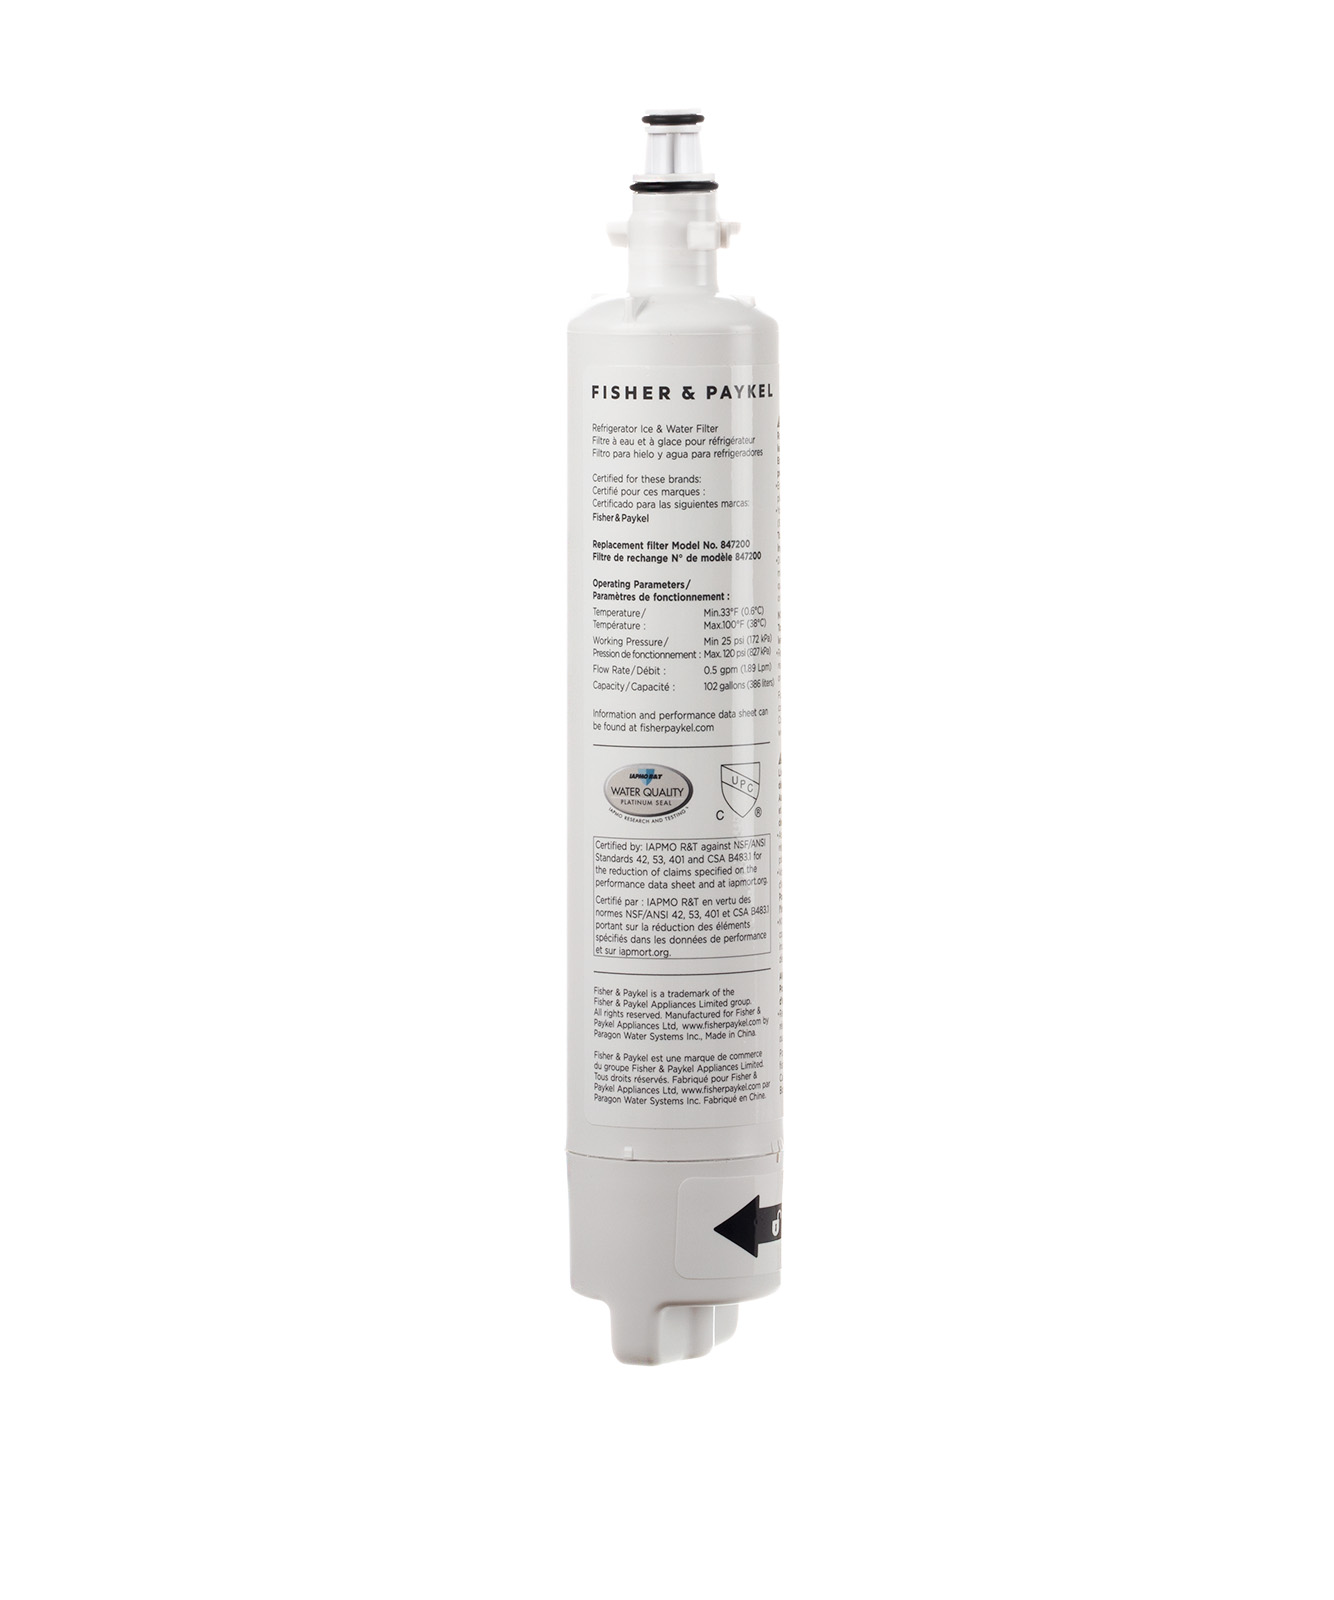 847200 - Water Filter Cartridge - 847200